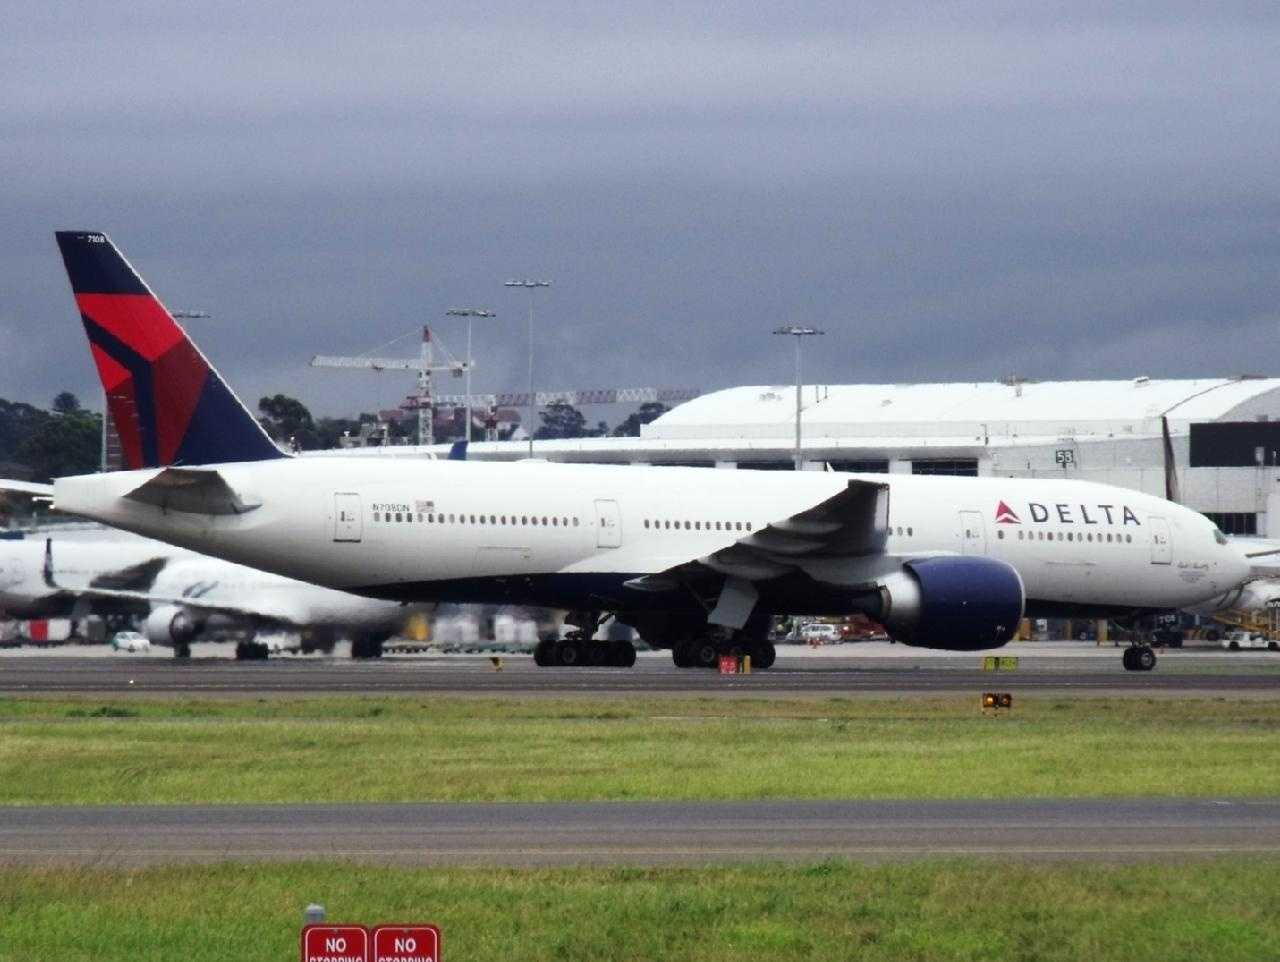 China-bound flight returns to Seattle after passenger assaults crew member